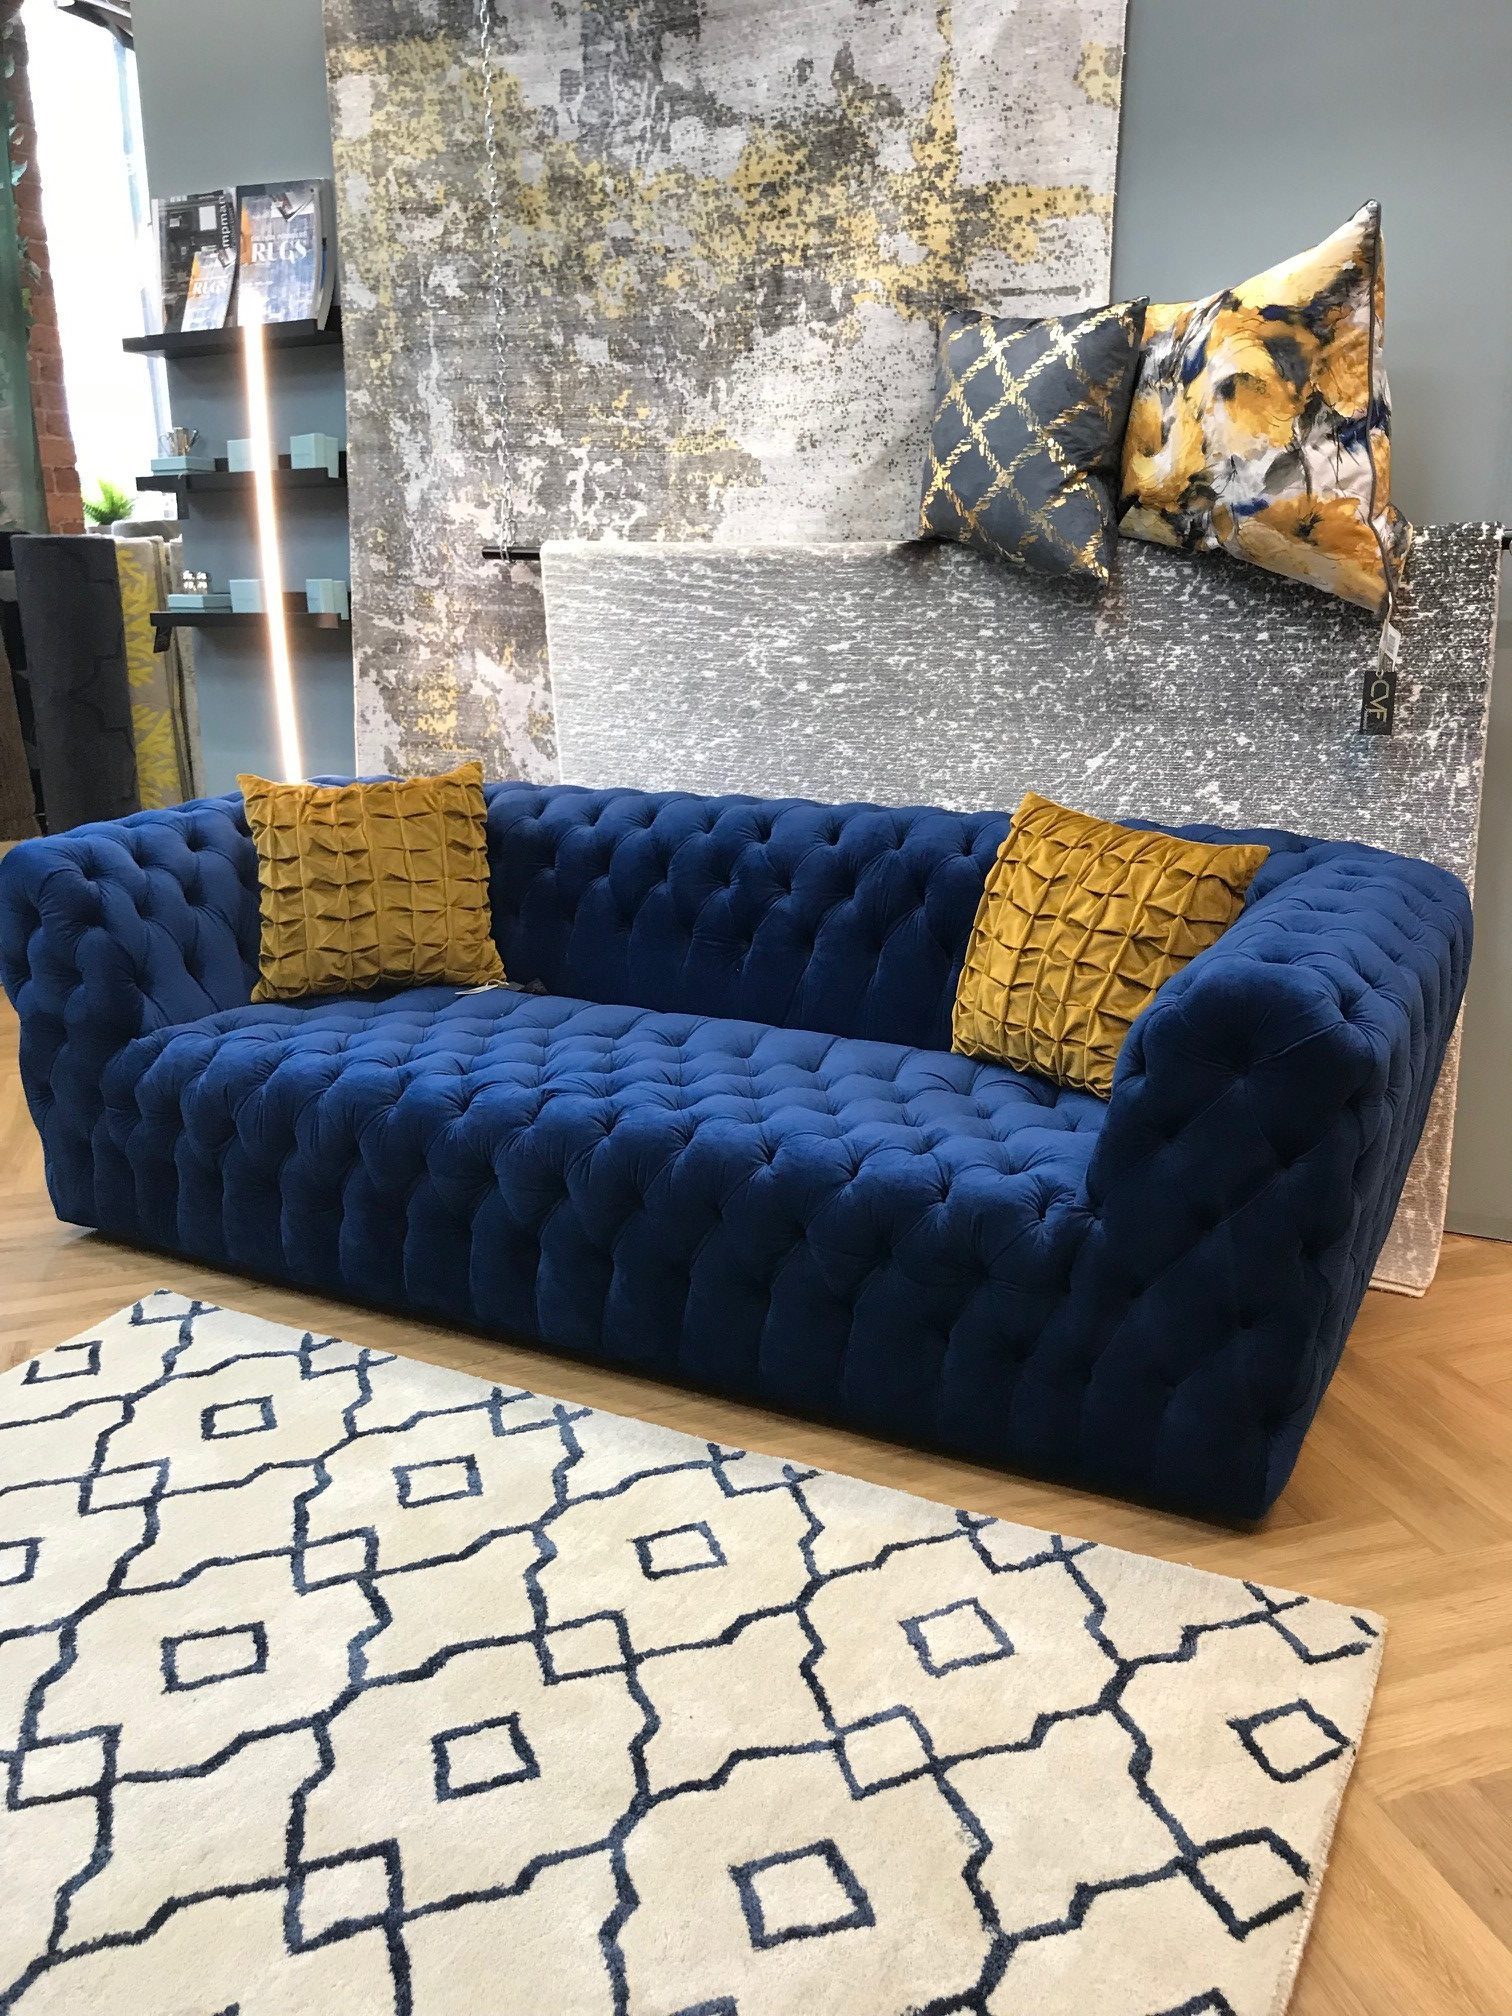 Premium Royal Blue Sofa Calder Valley Flooring